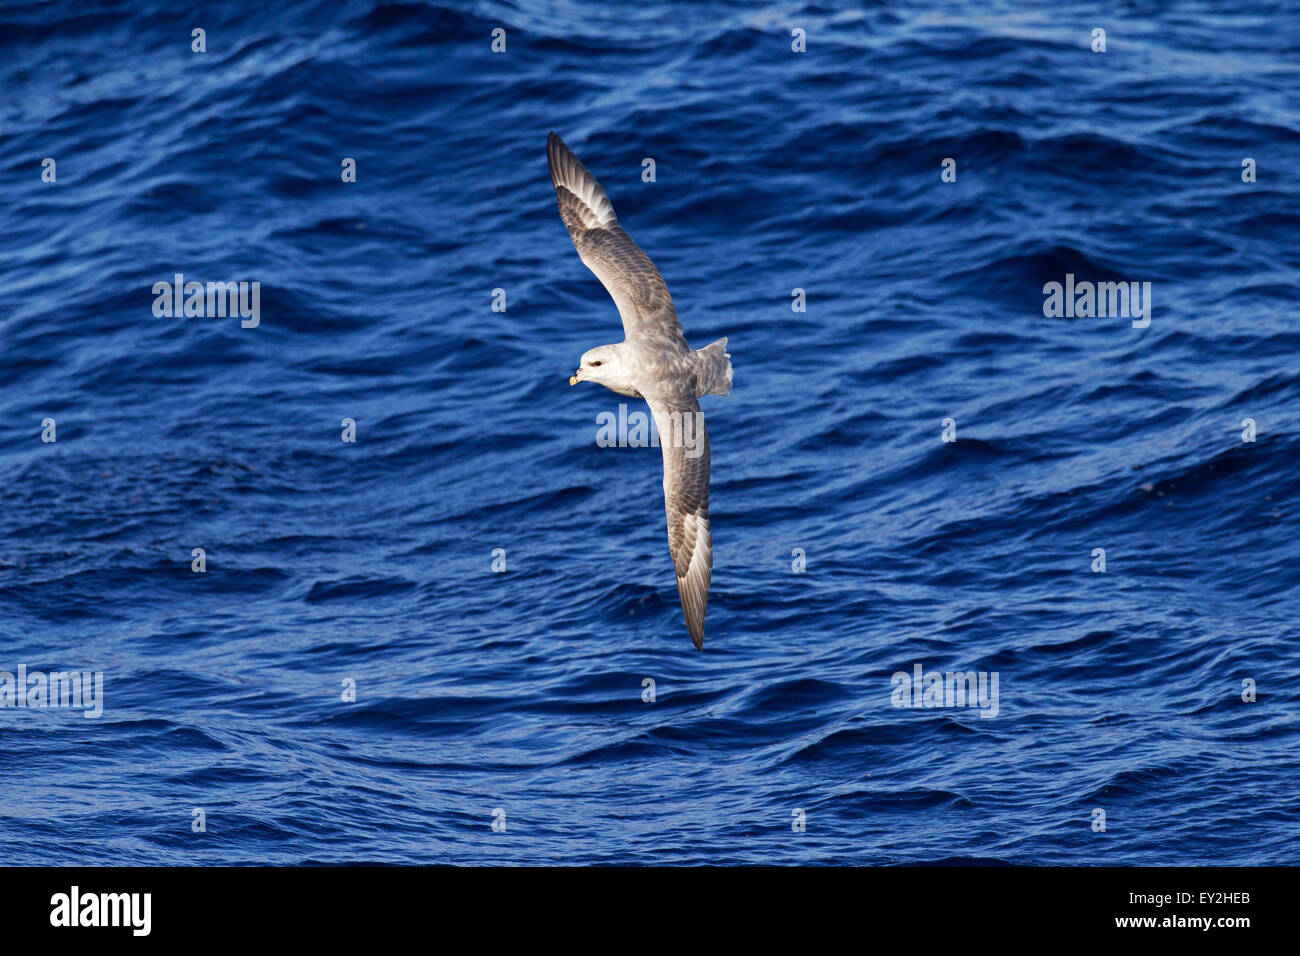 Northern fulmar / Arctic fulmar (Fulmarus glacialis) soaring above the sea water - Stock Image